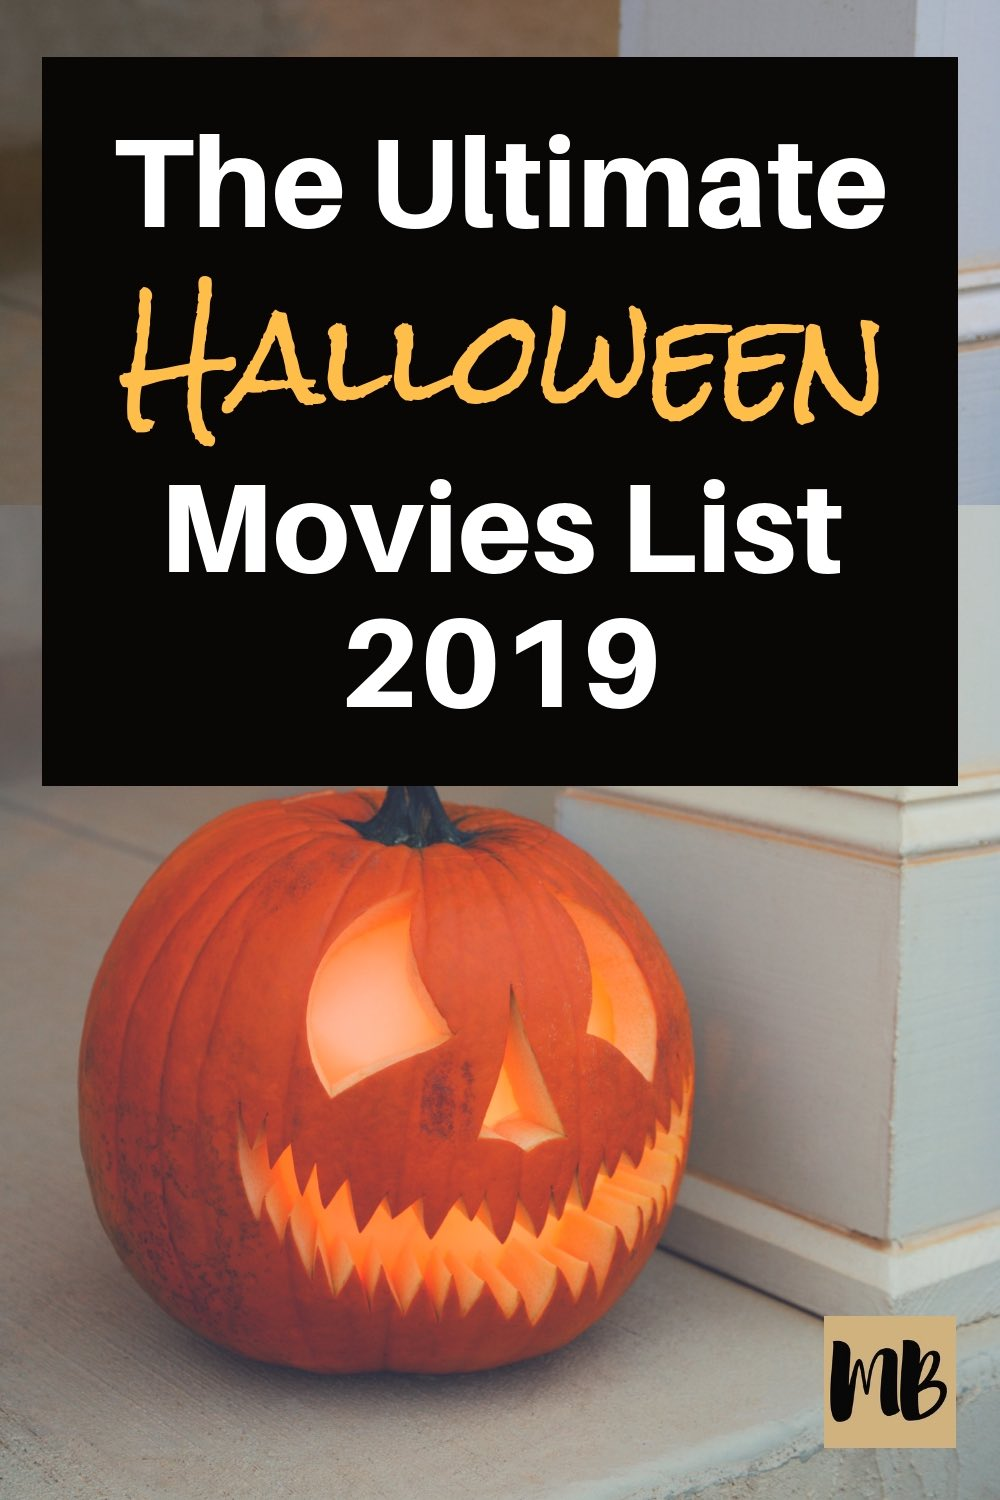 The Ultimate Halloween Movies List 2019